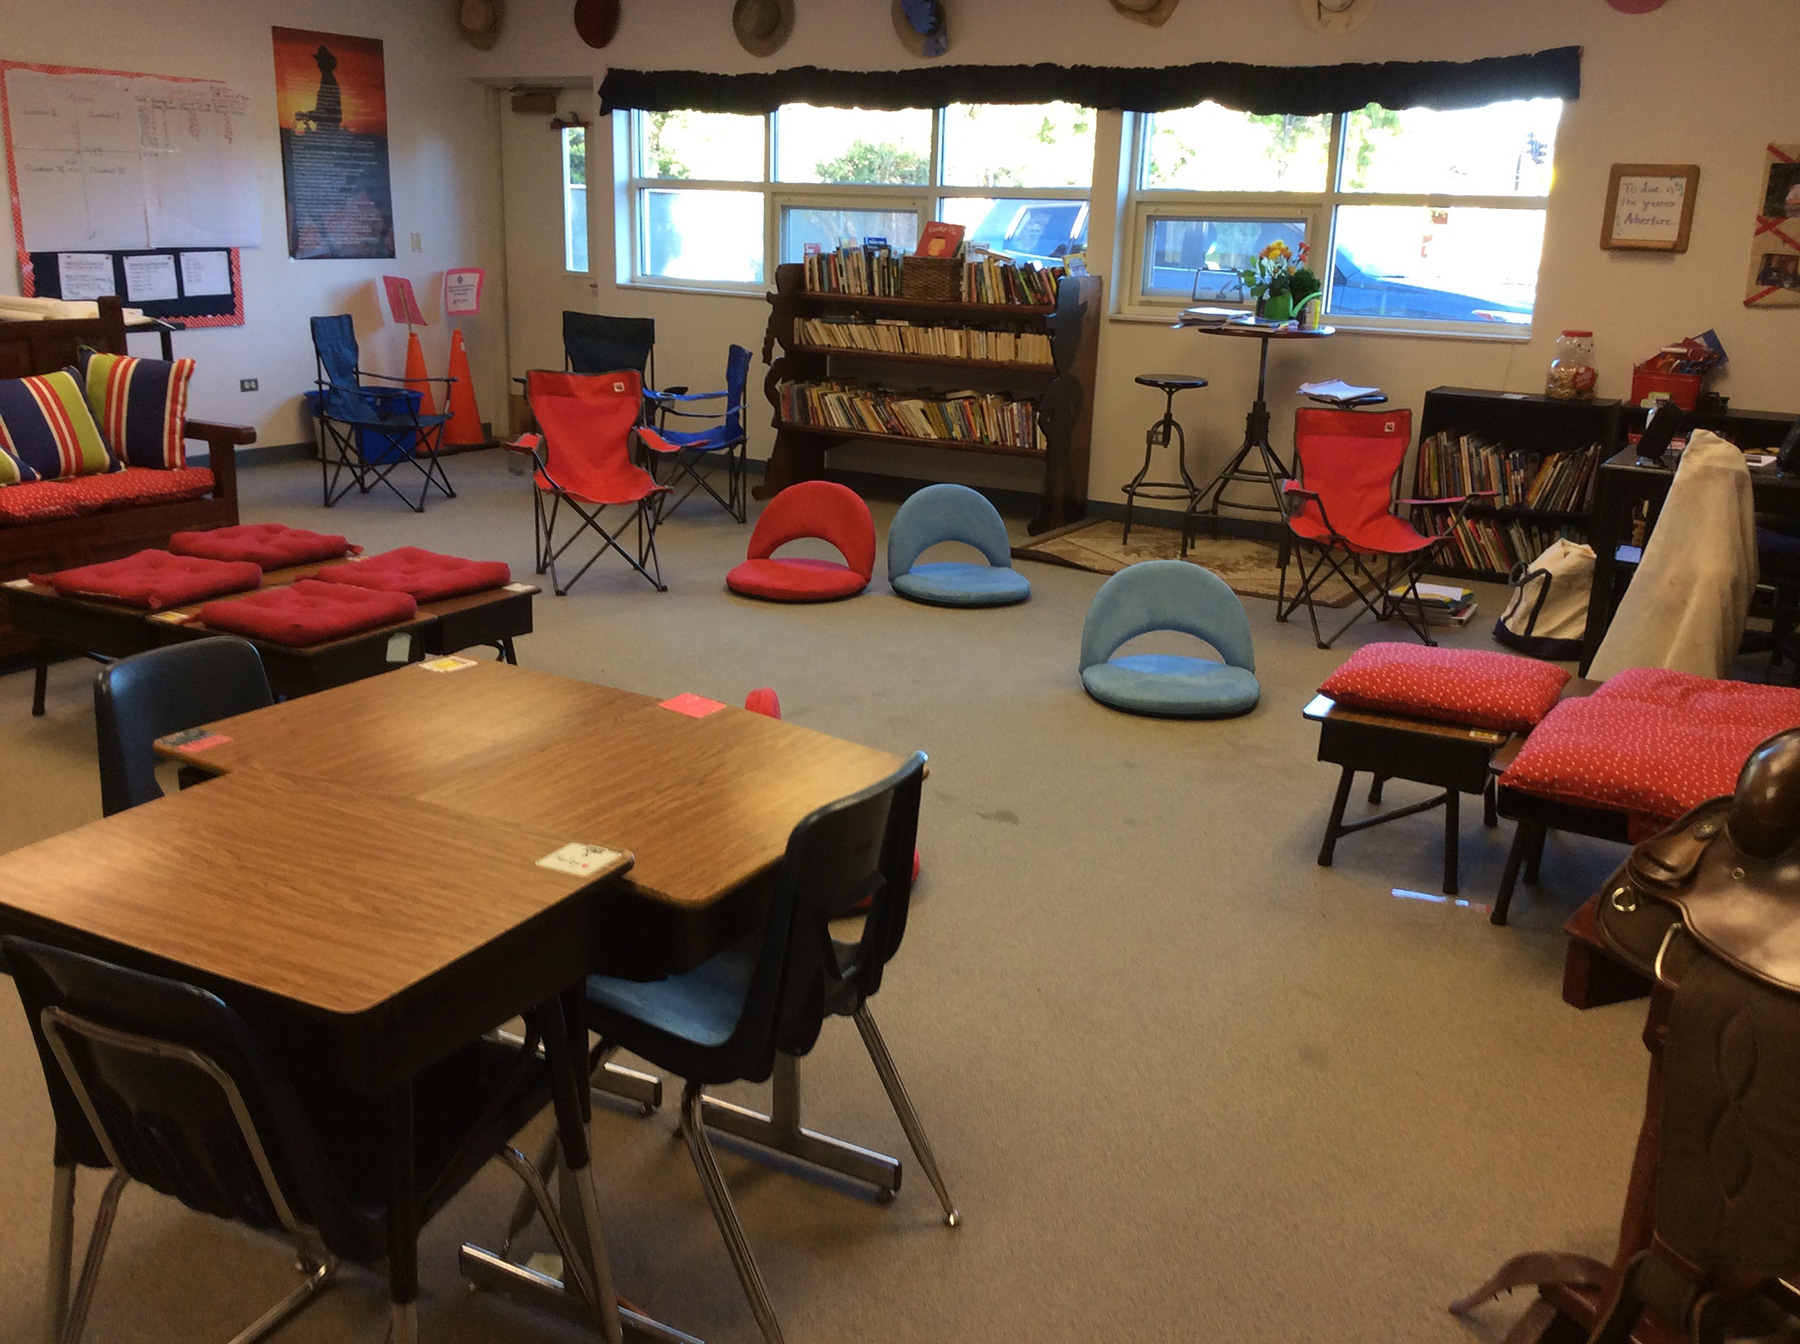 Elementary Classrooms Without Desks : Top reasons to use flexible seating in classrooms